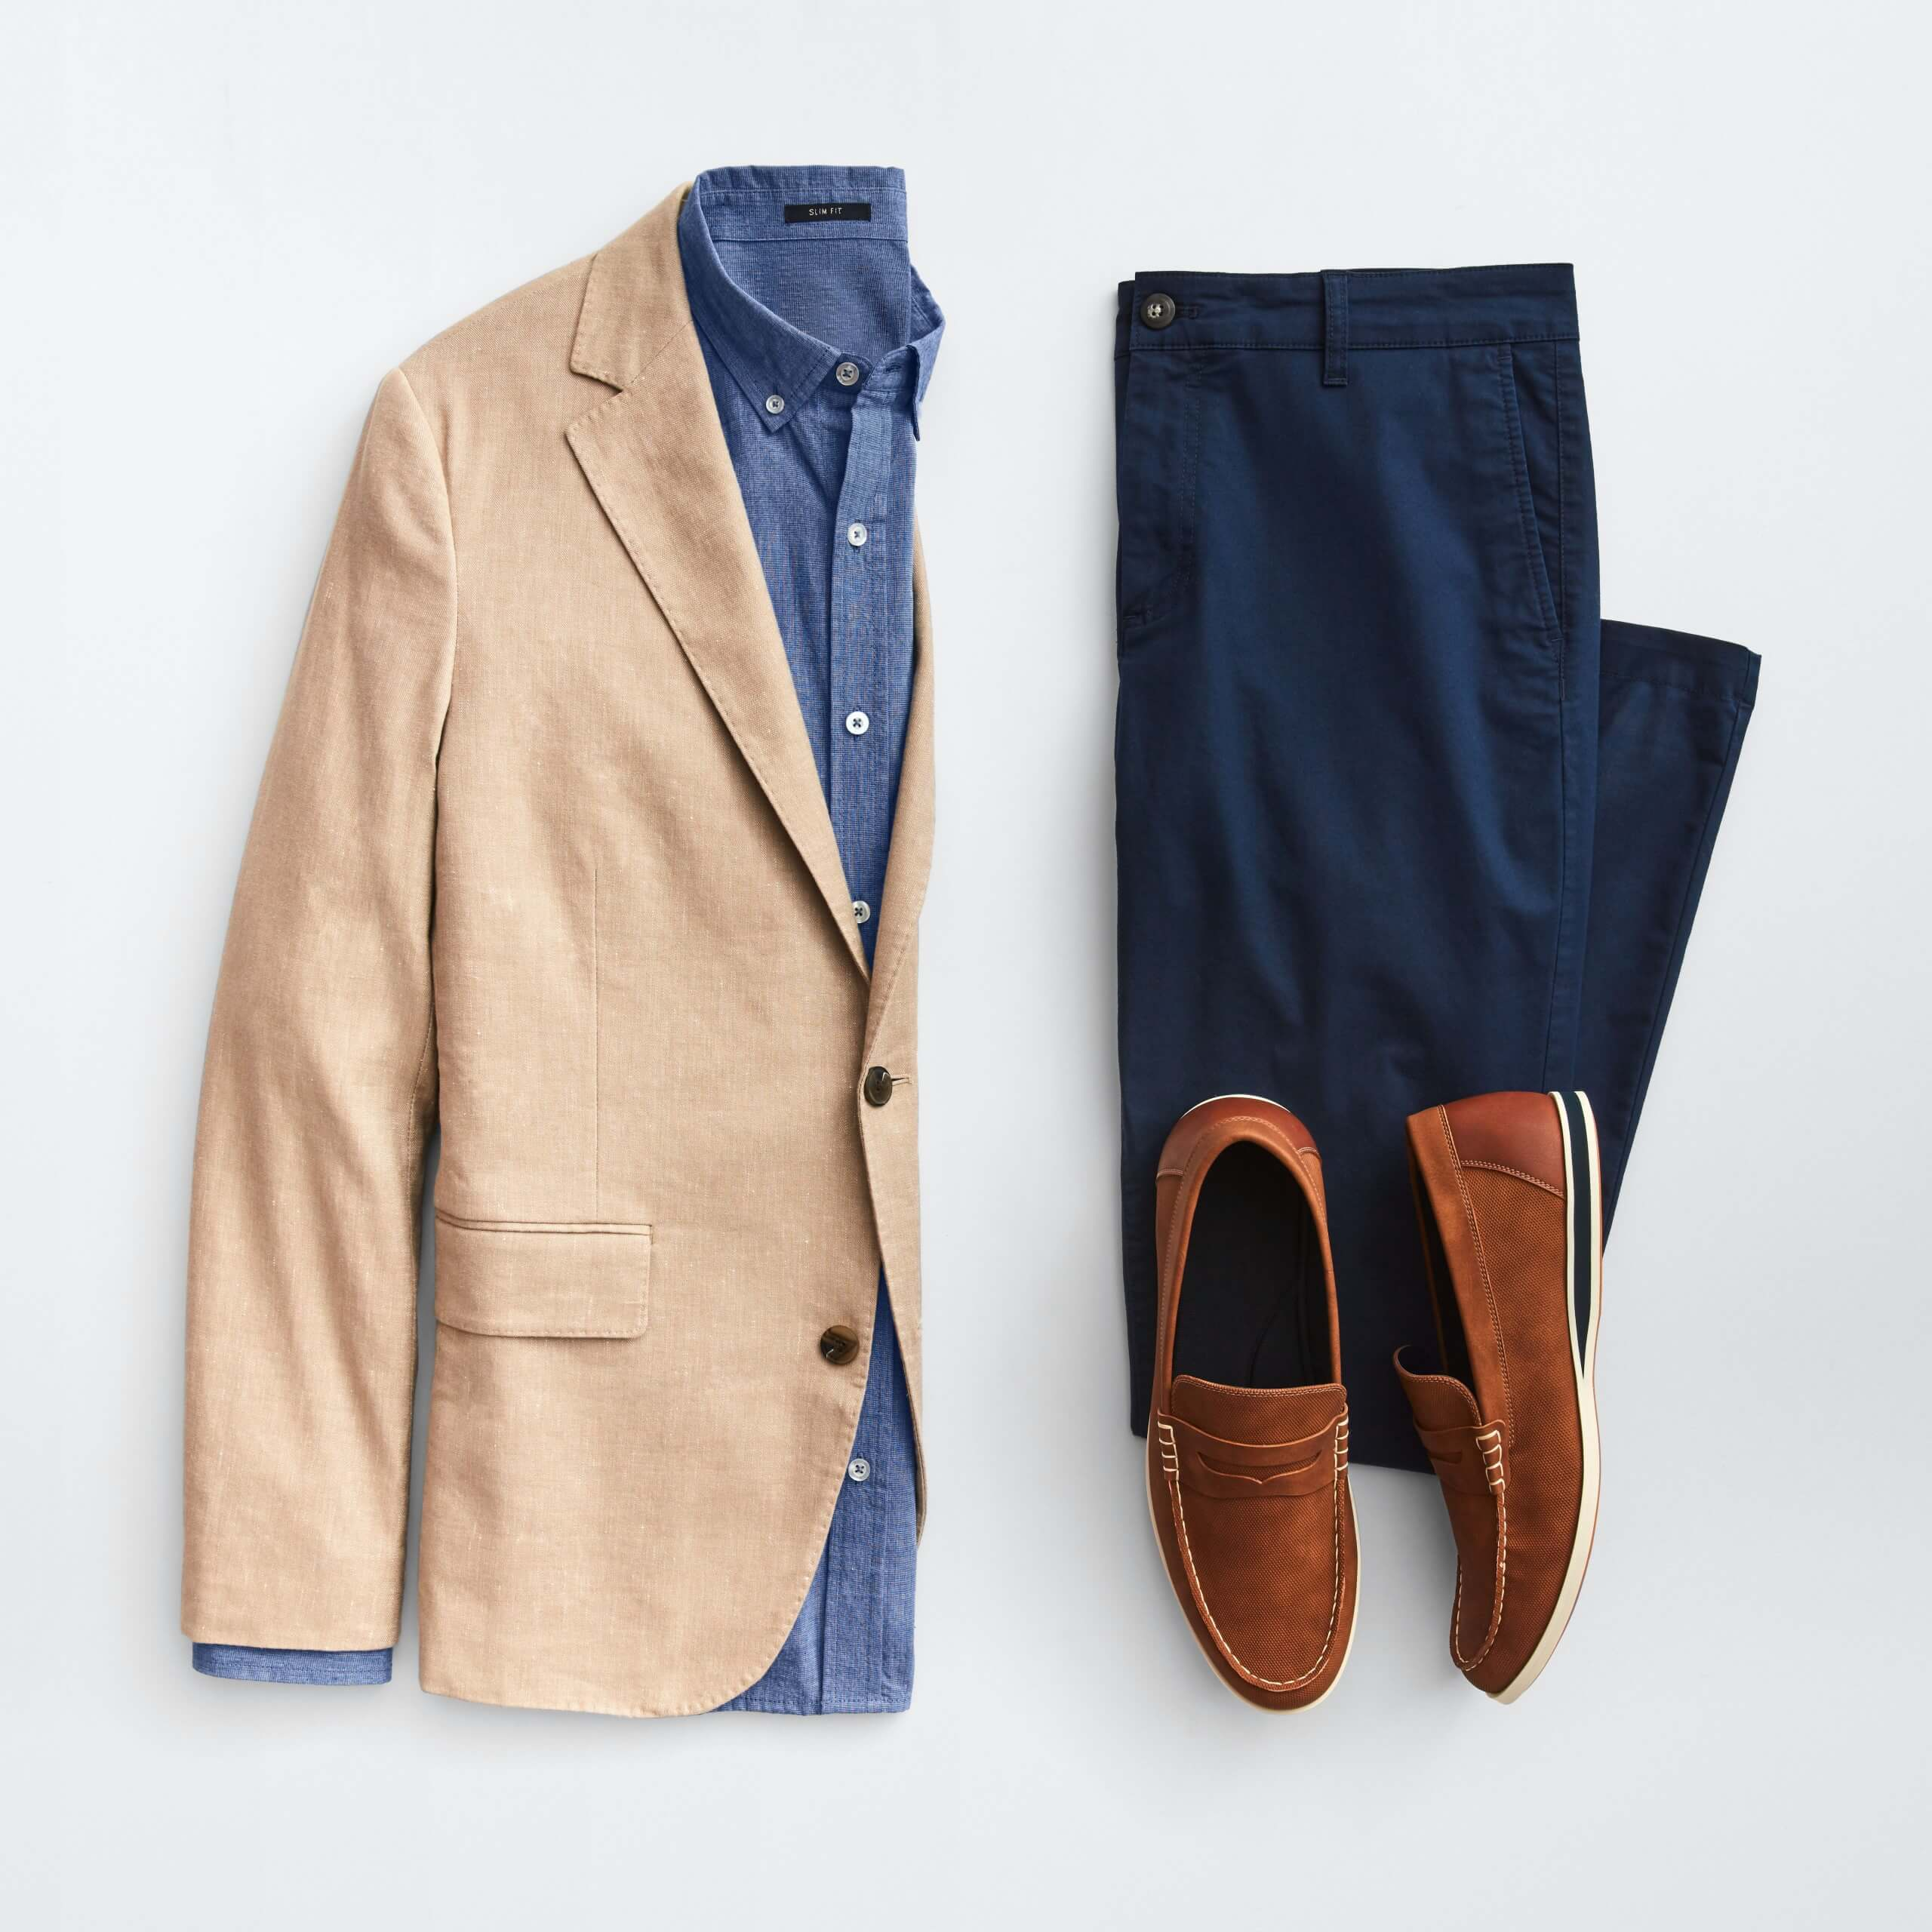 Stitch Fix Men's outfit laydown featuring a tan blazer over a navy button-down shirt, next to navy pants and brown loafers.